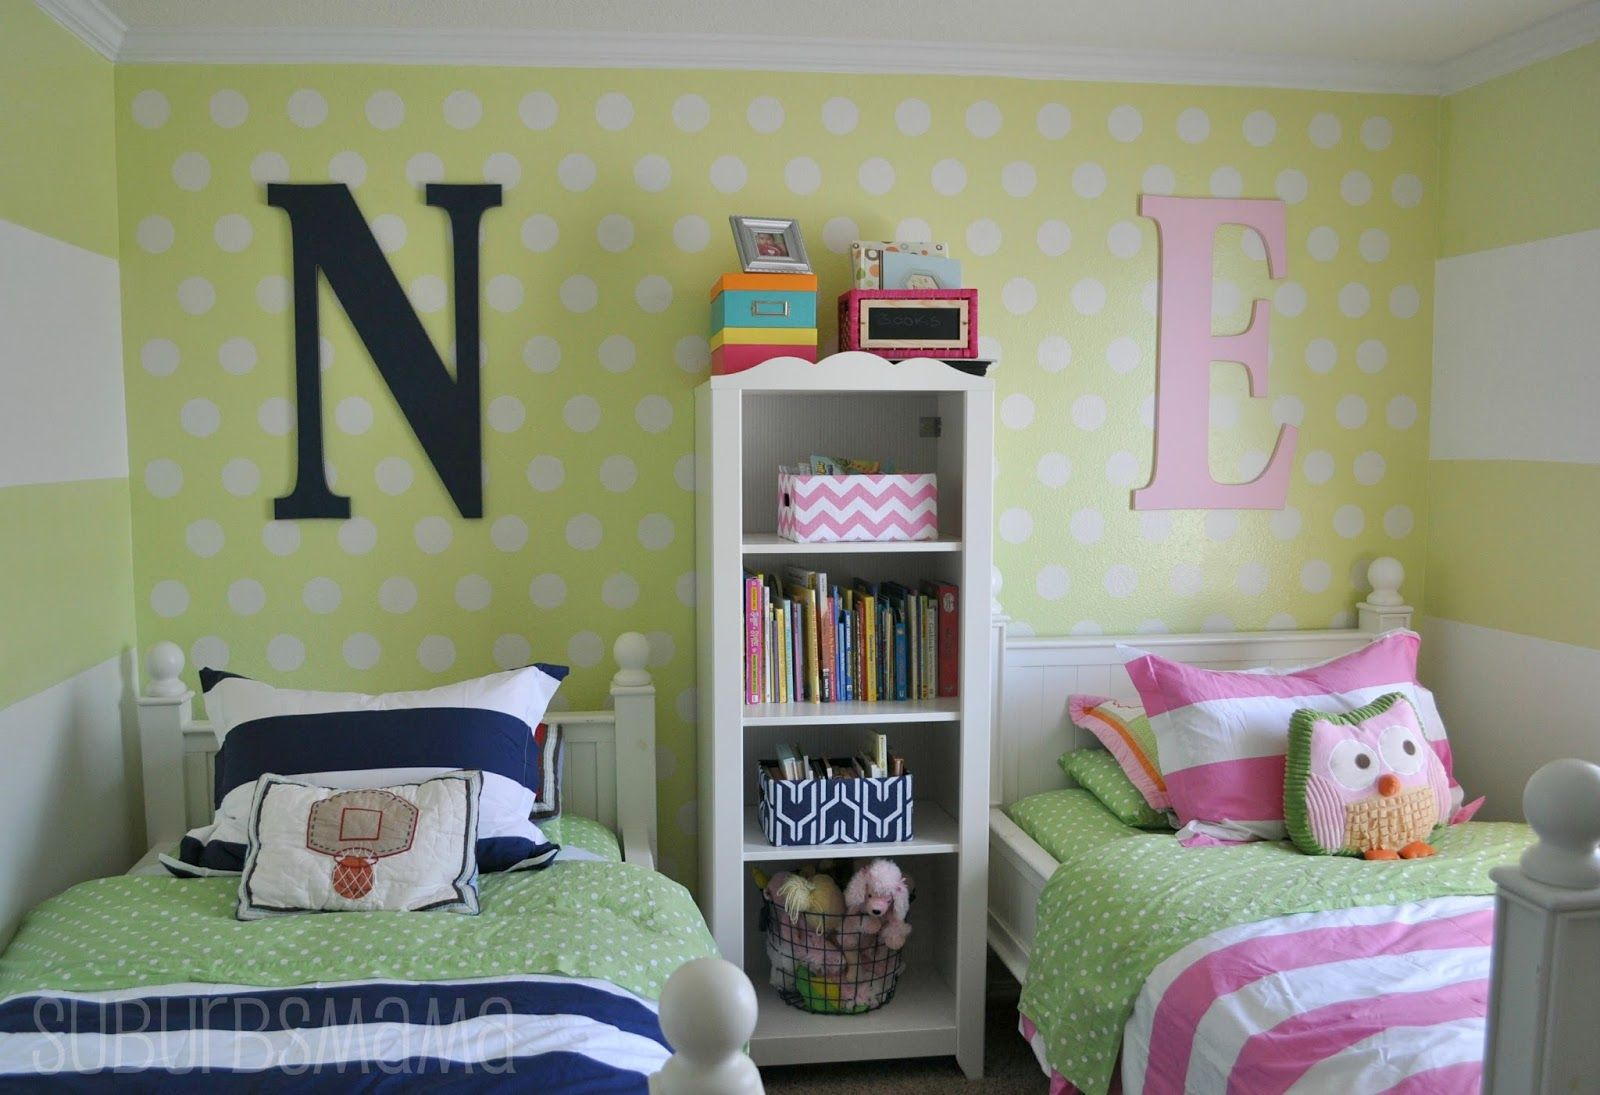 Bedroom designs for boys and girls - 16 Gorgeous Boy Girl Room Ideas Beautiful Boy And Girl Shared Bedroom With Two Single Size Beds Navy And Pink Stripes Pillows Blankets Plus Basketball